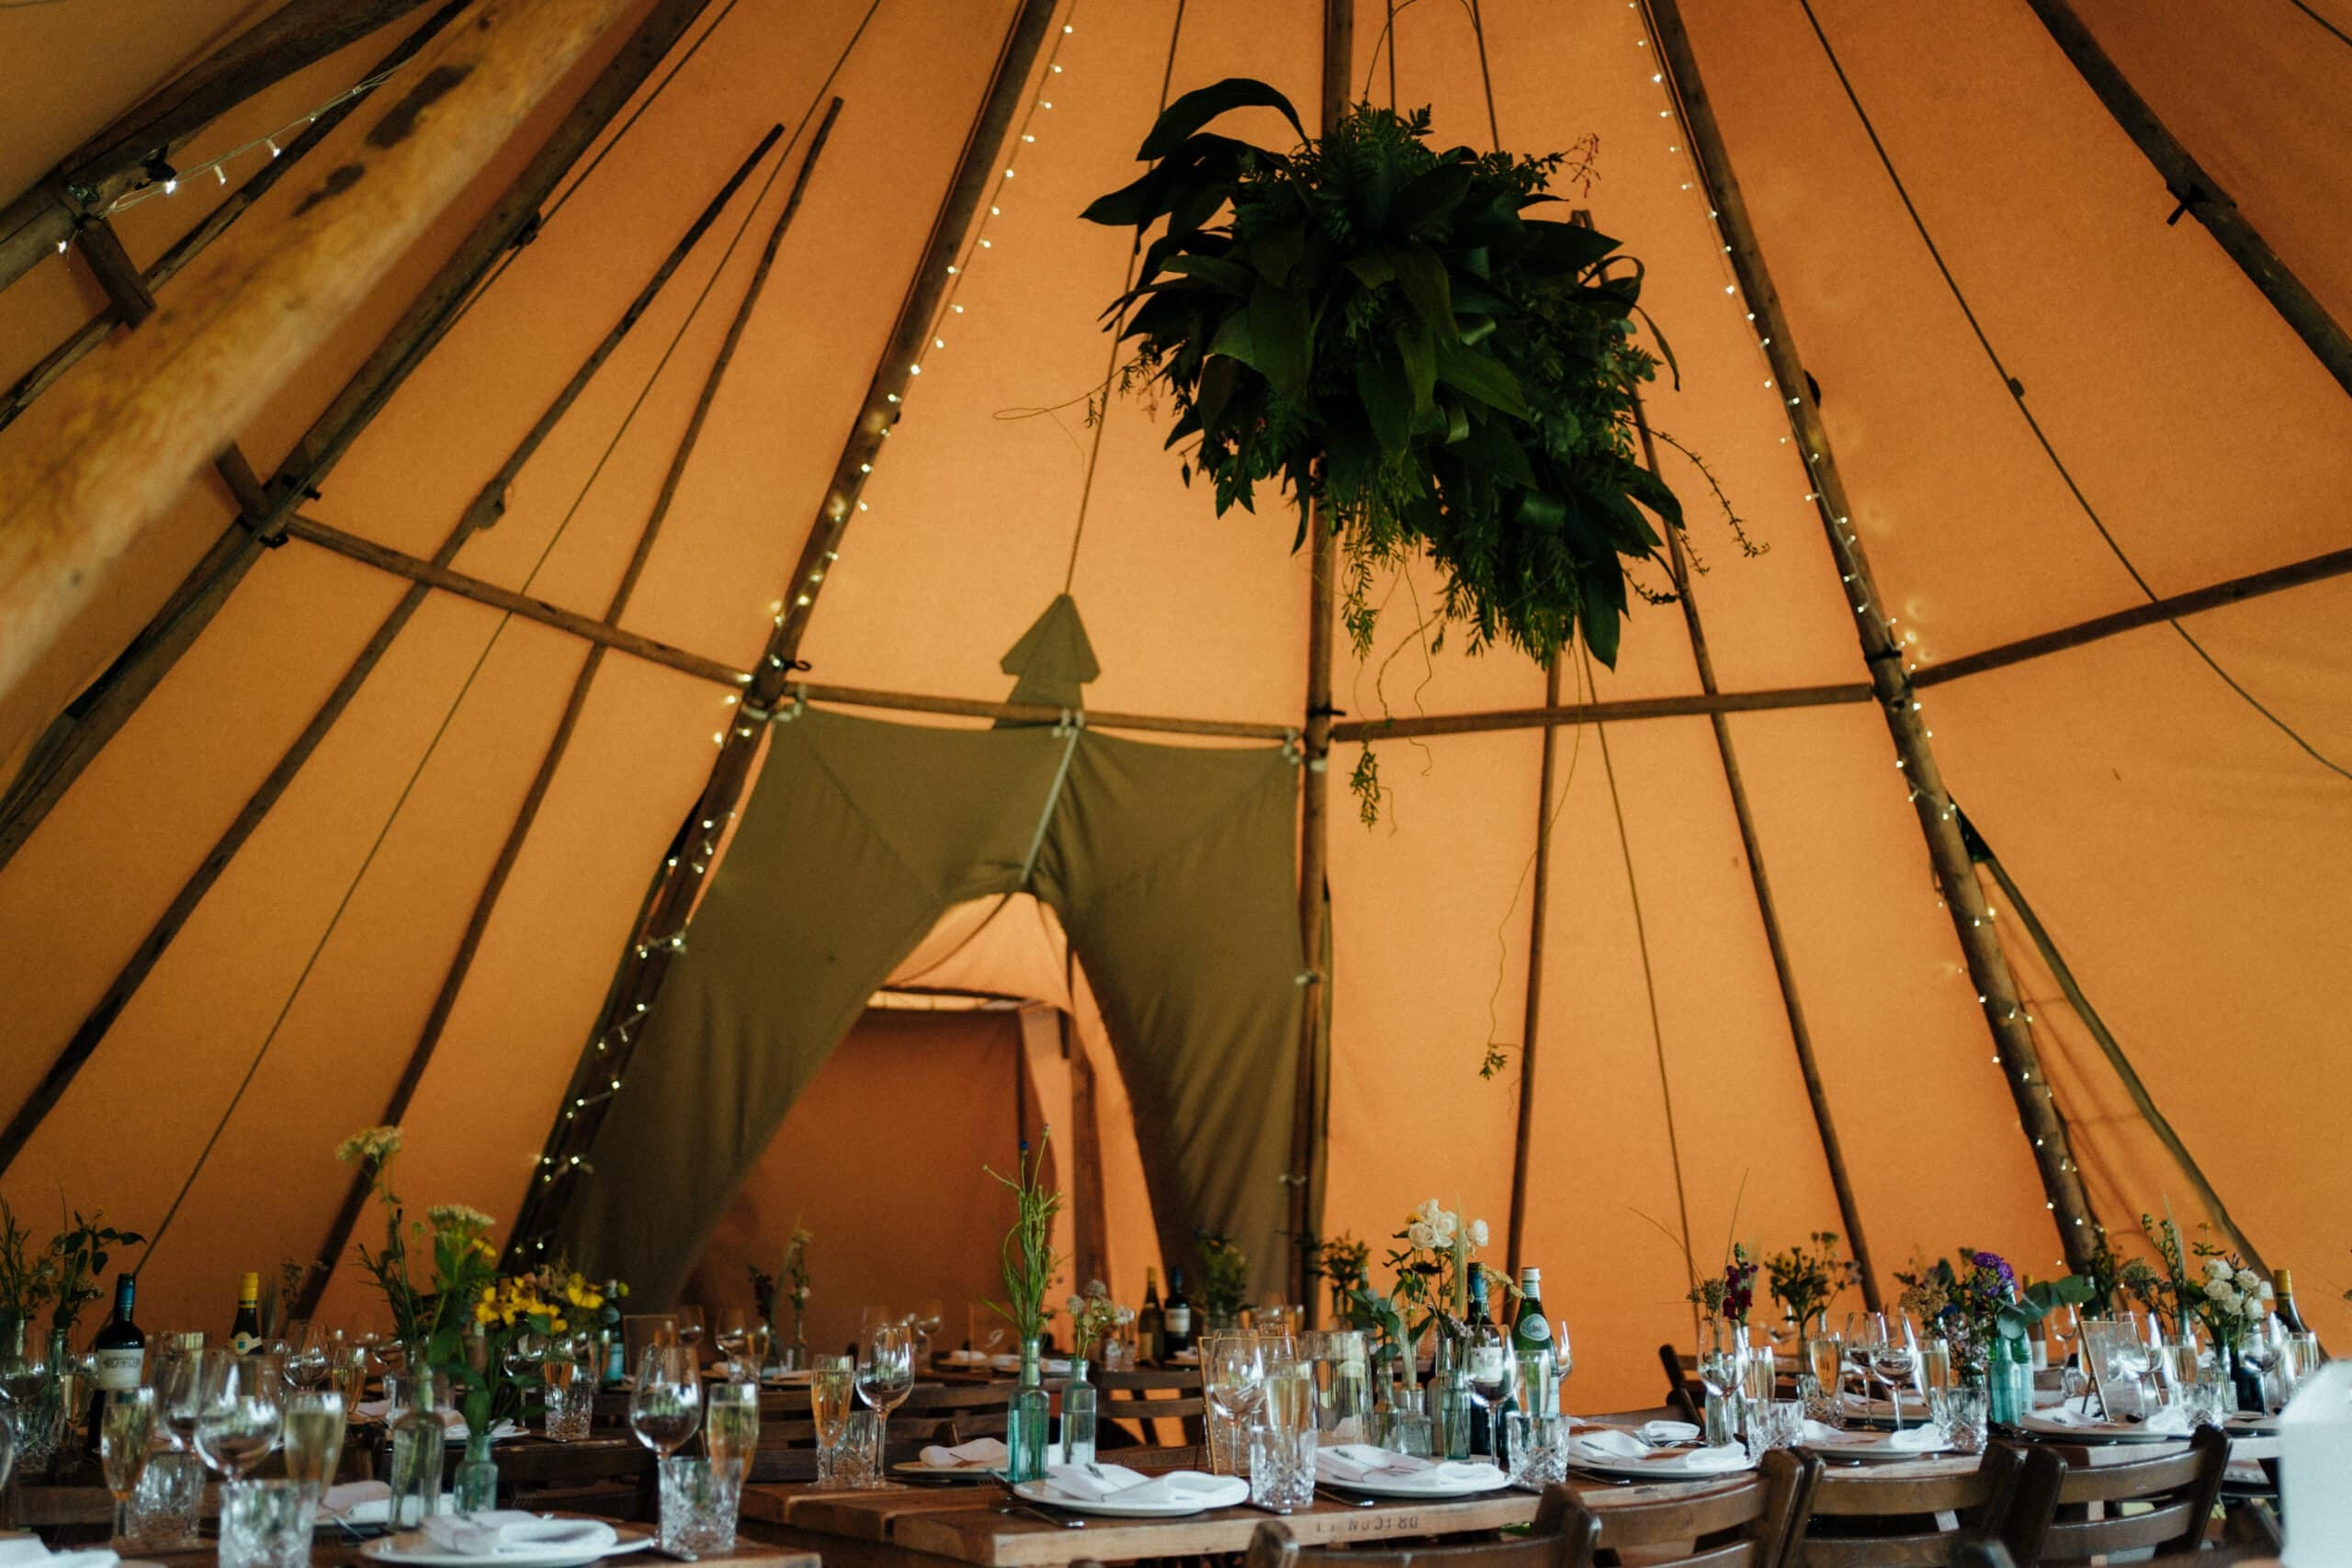 Tipi wedding decorations at Chaucer Barn in Norfolk